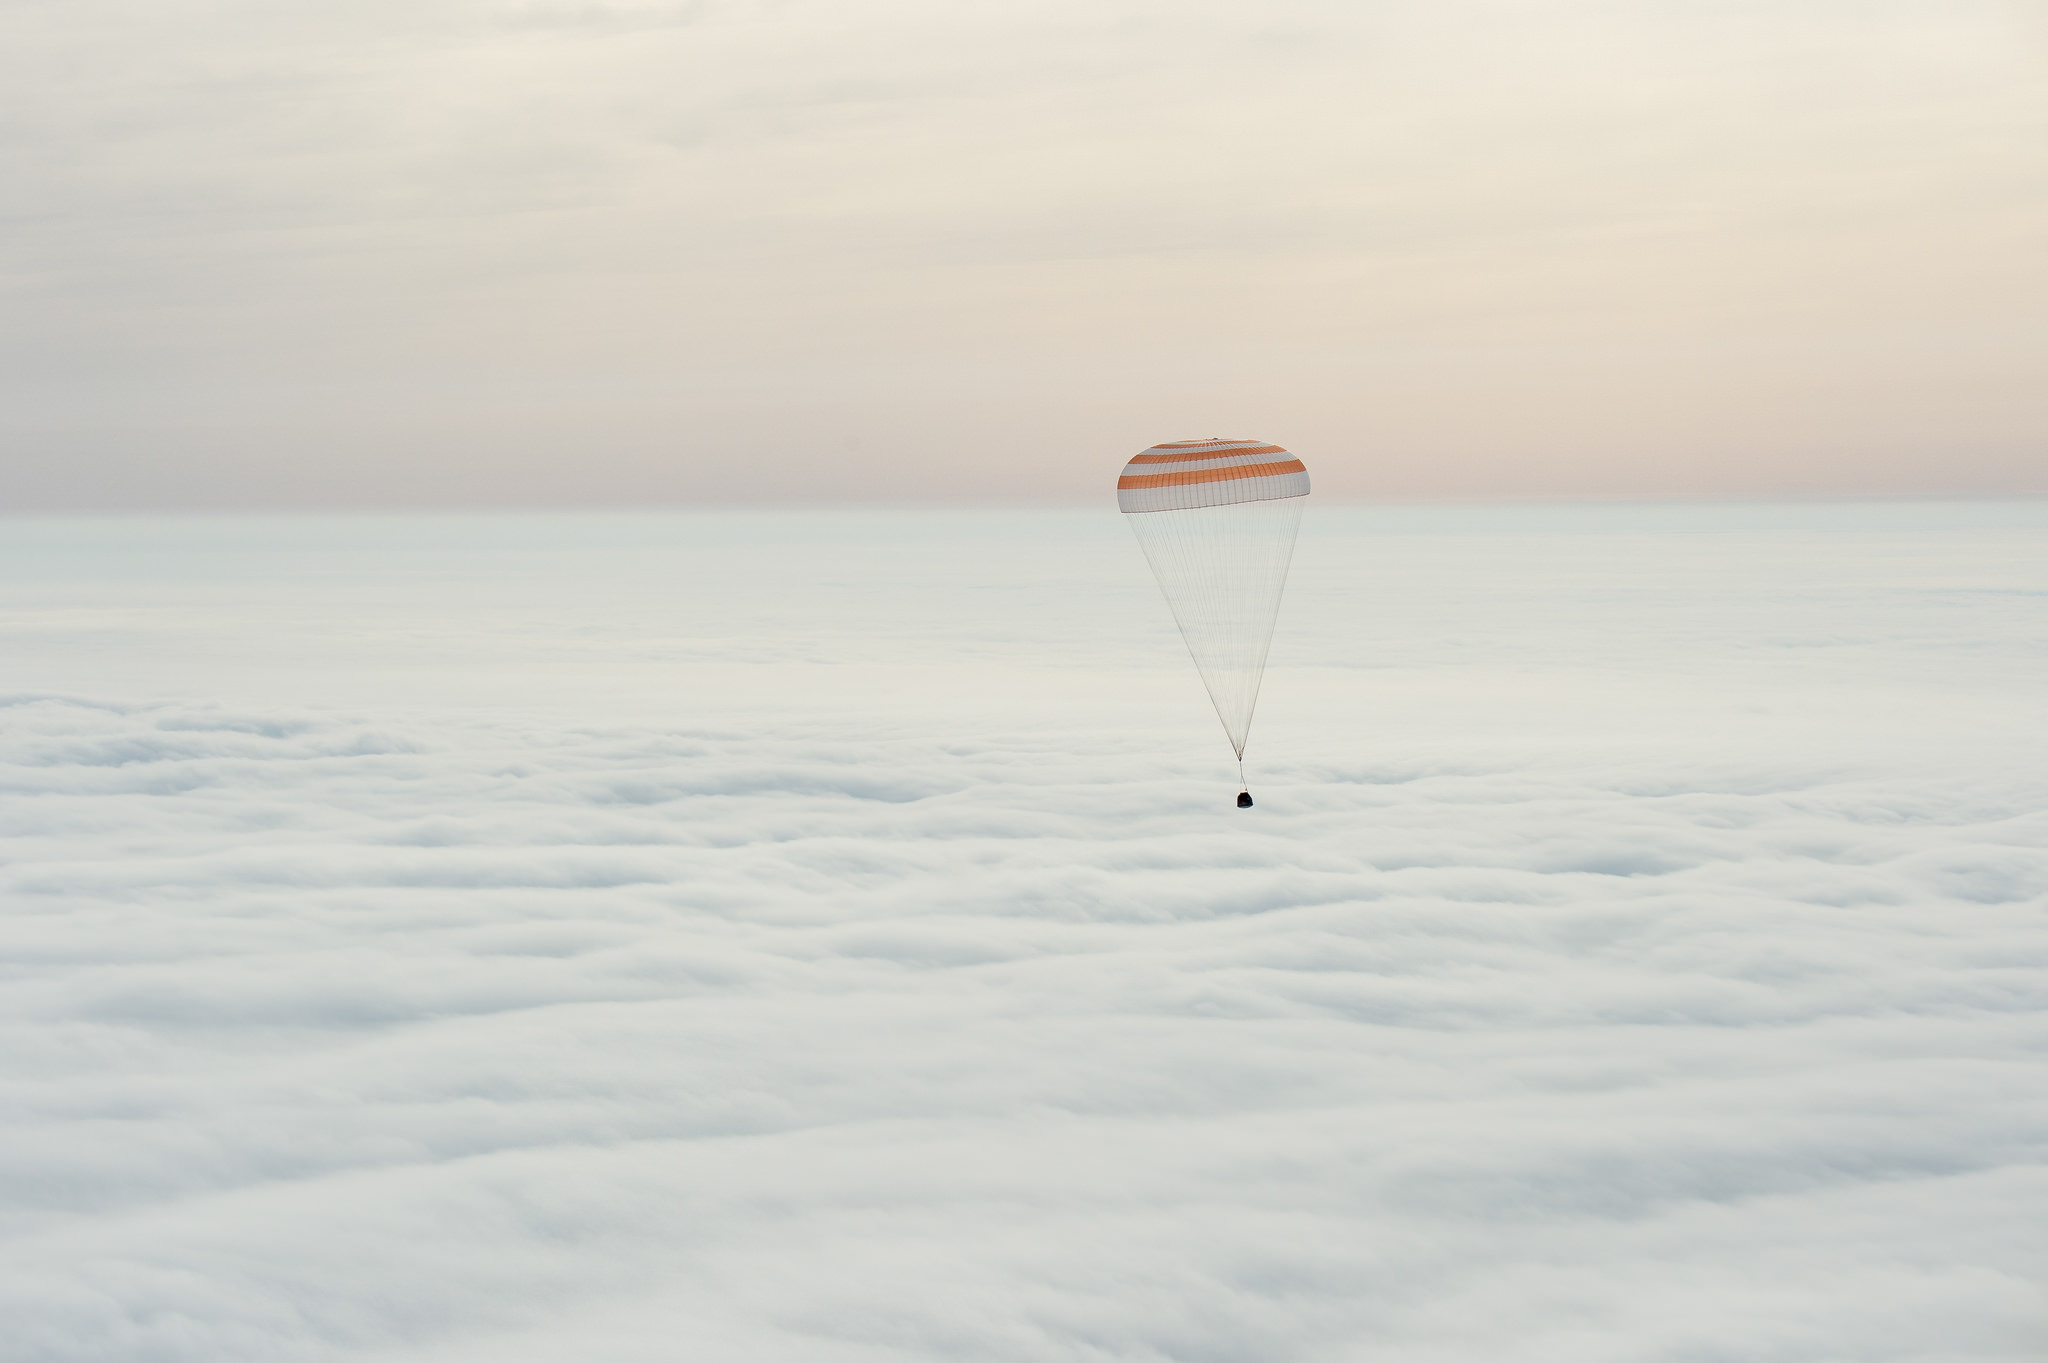 The Soyuz TMA-18M spacecraft is seen as it lands with Expedition 46 Commander Scott Kelly of NASA and Russian cosmonauts Mikhail Kornienko and Sergey Volkov of Roscosmos near the town of Zhezkazgan, Kazakhstan on Wednesday, March 2, 2016 (Kazakh time).